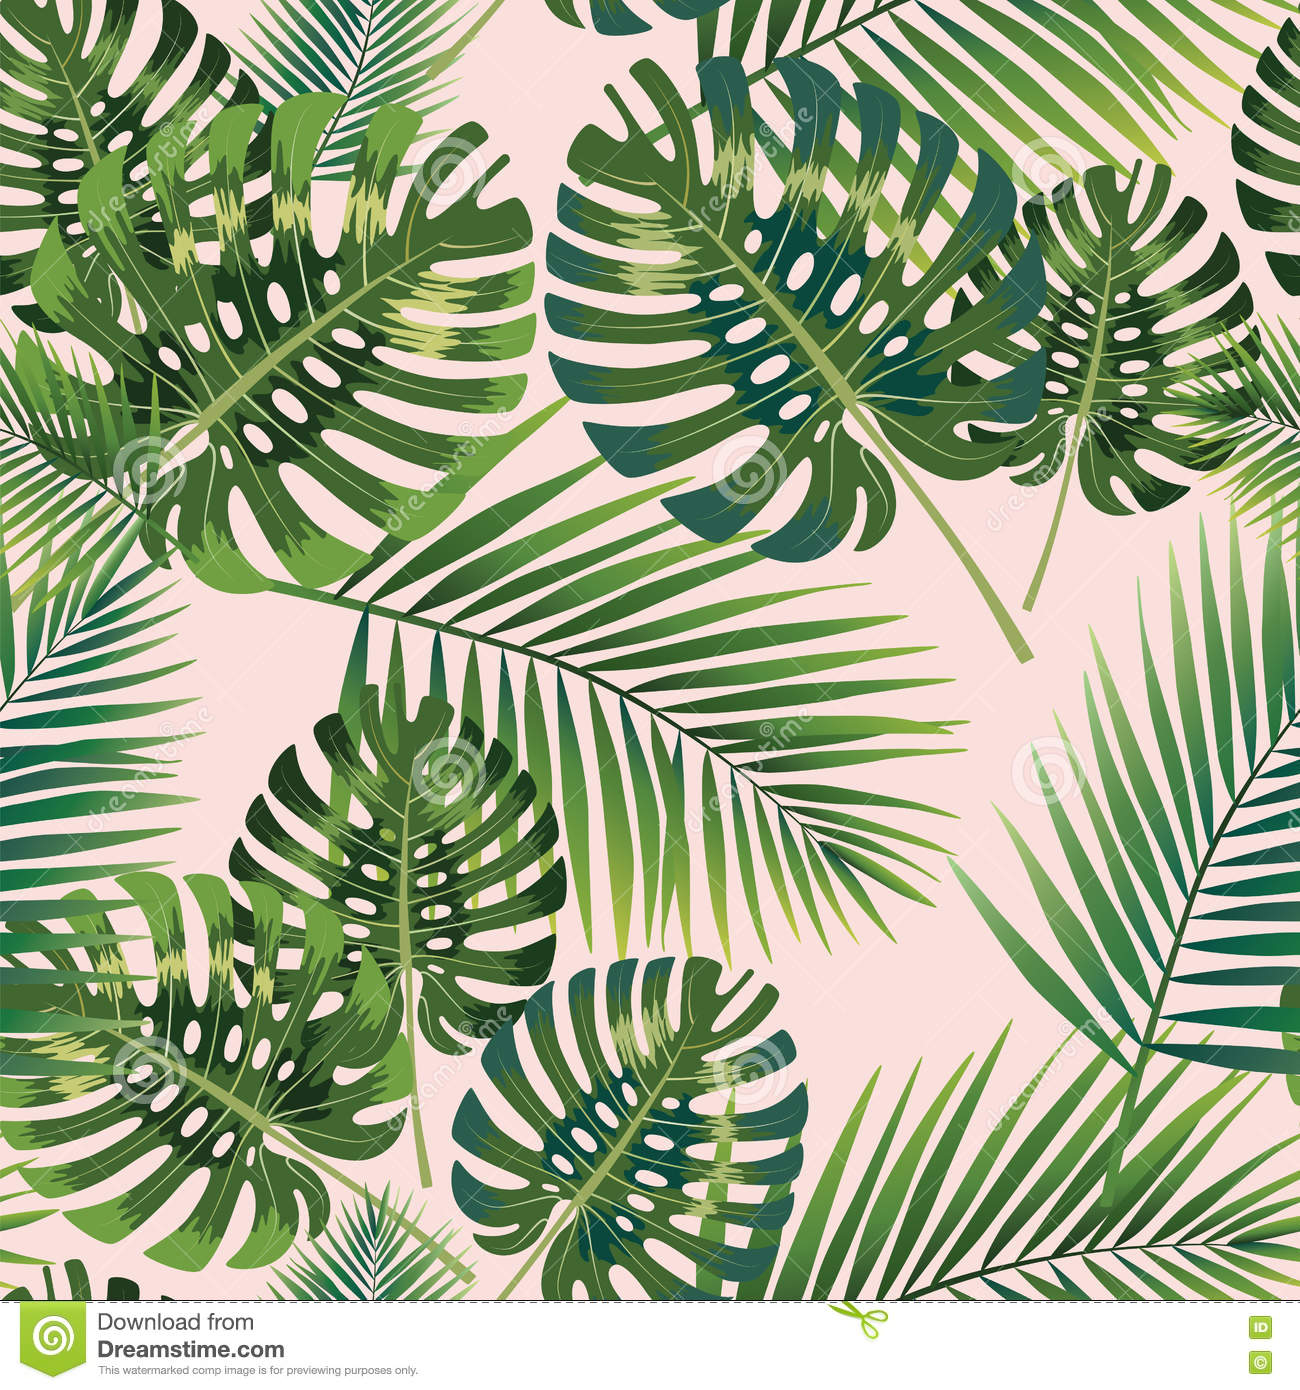 Cute Cactus Wallpaper Macbook Palm Tropical Leaves Seamless Pattern Vector Illustration